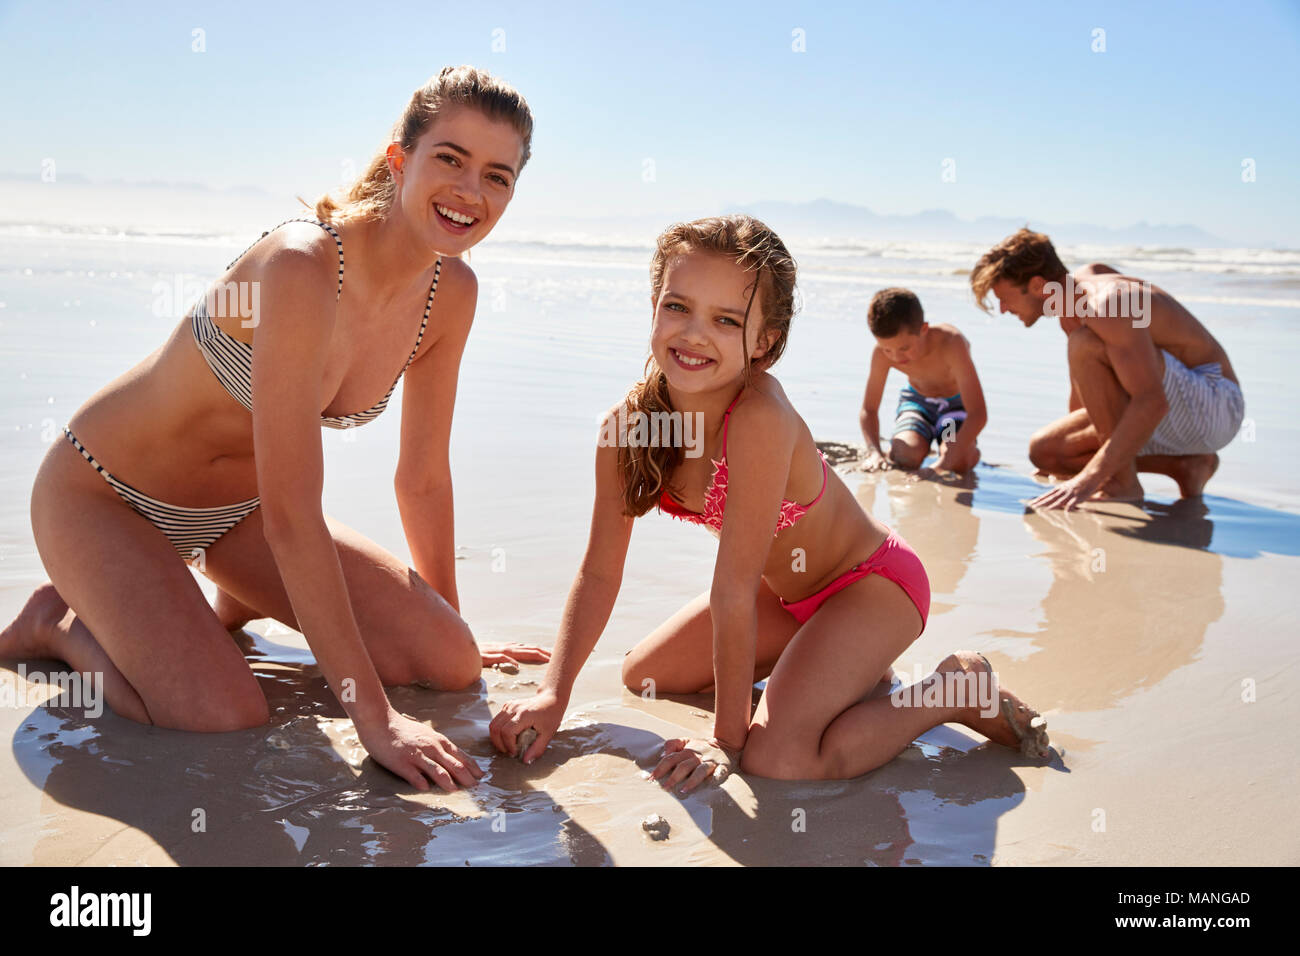 Family On Summer Vacation Playing On Beach Together - Stock Image